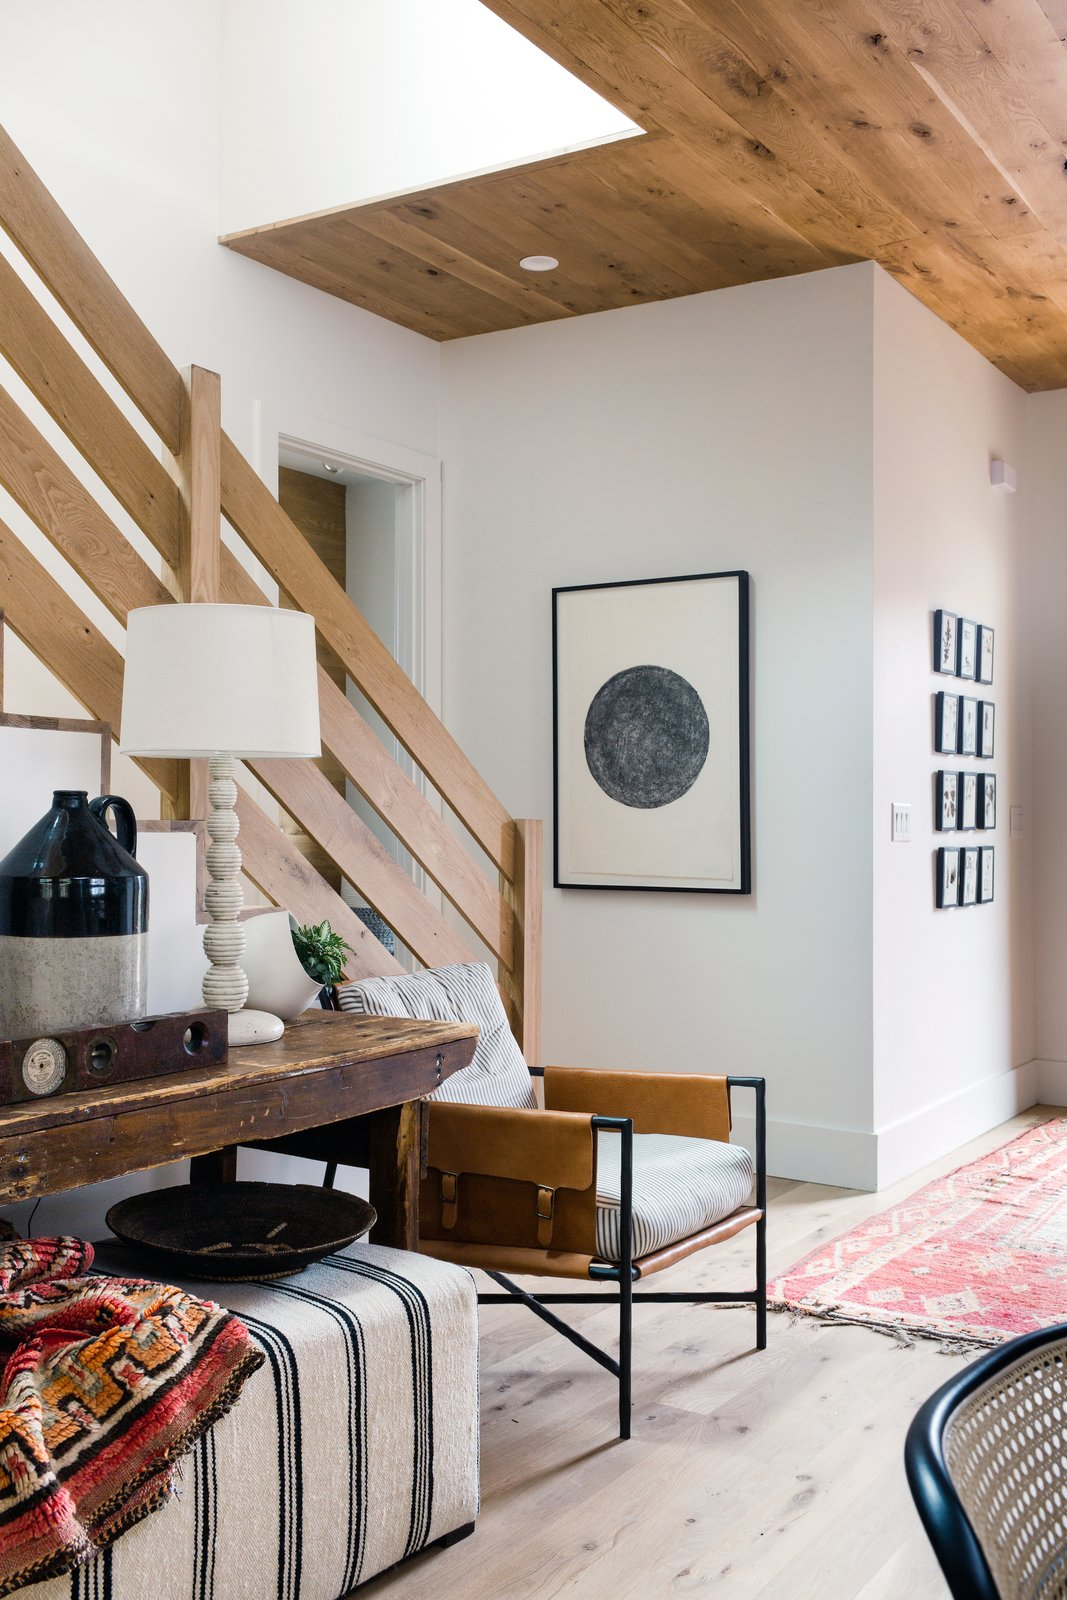 The Naturally House entryway